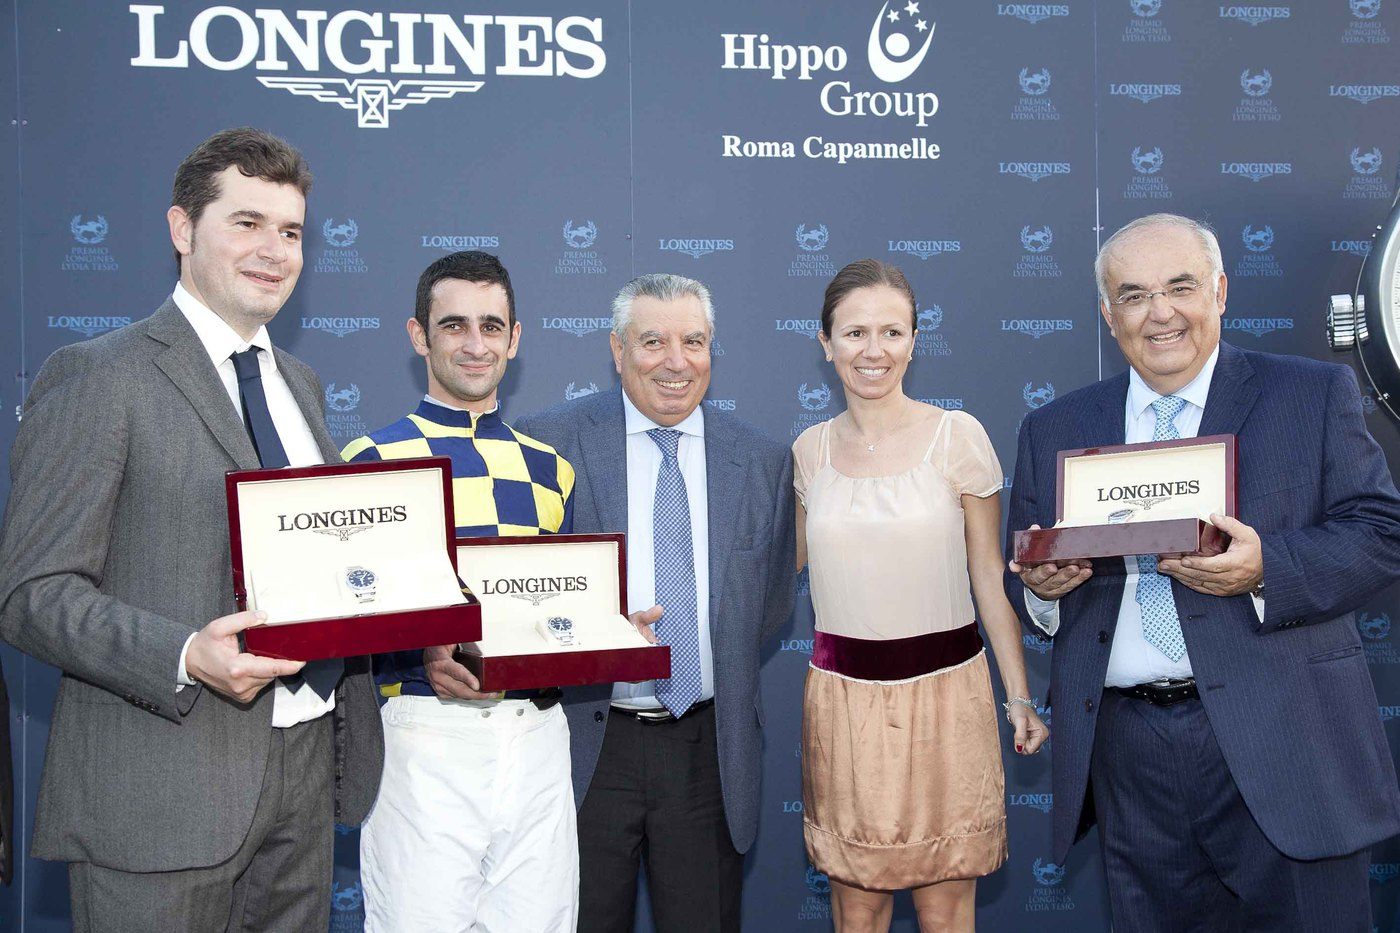 Longines Flat Racing Event: Fabio Branca wins the Premio Longines Lydia Tesio on Charity Line 4